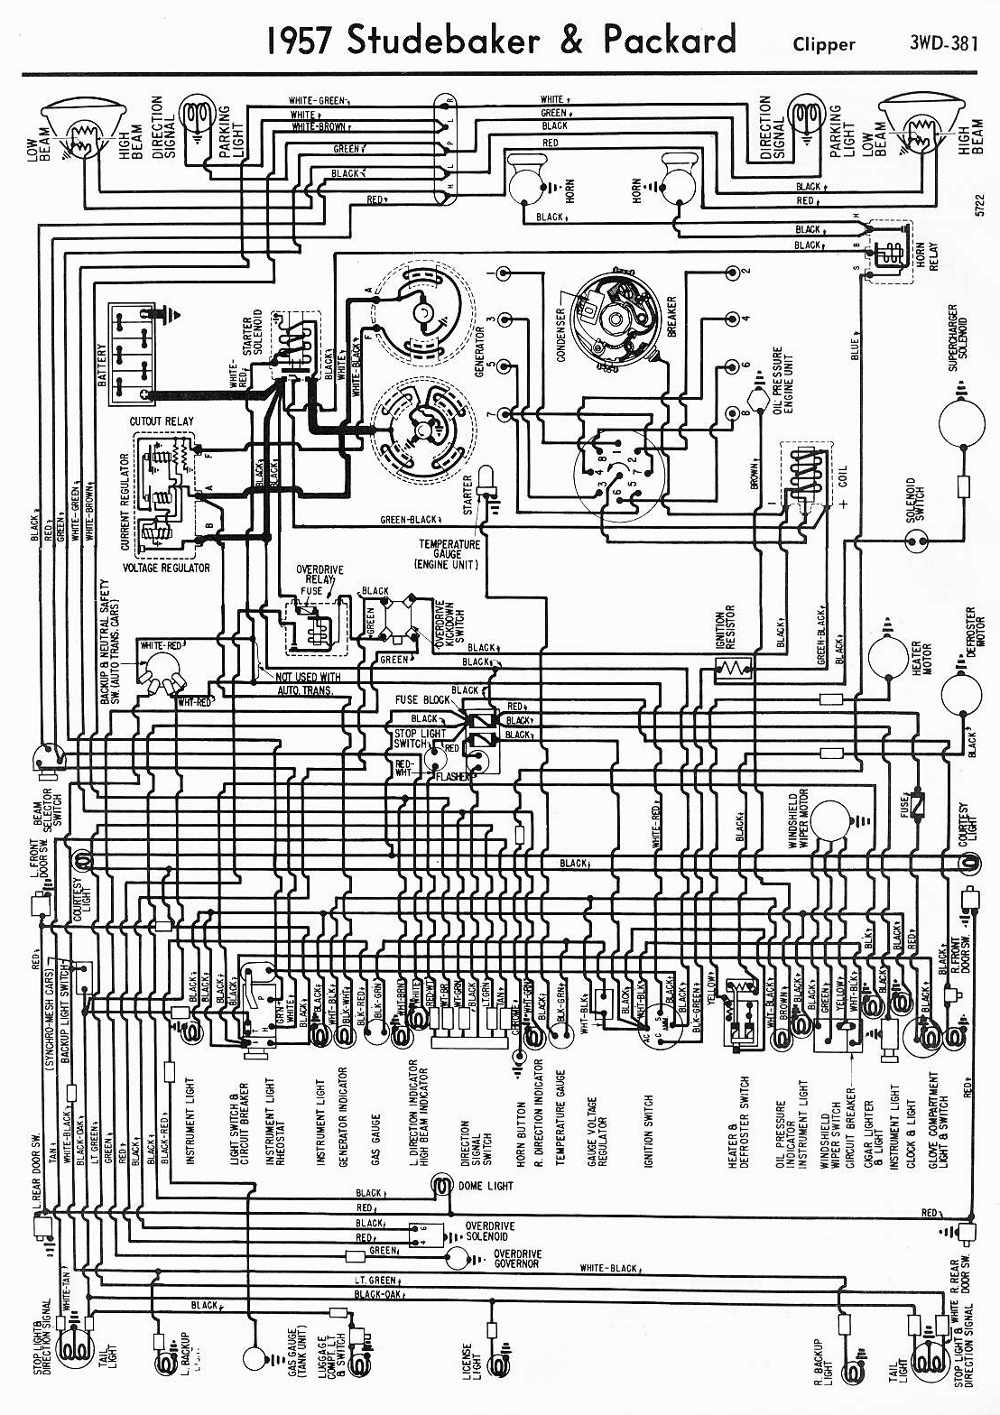 wiring diagram for a wiring diagrams 911: december 2011 #8